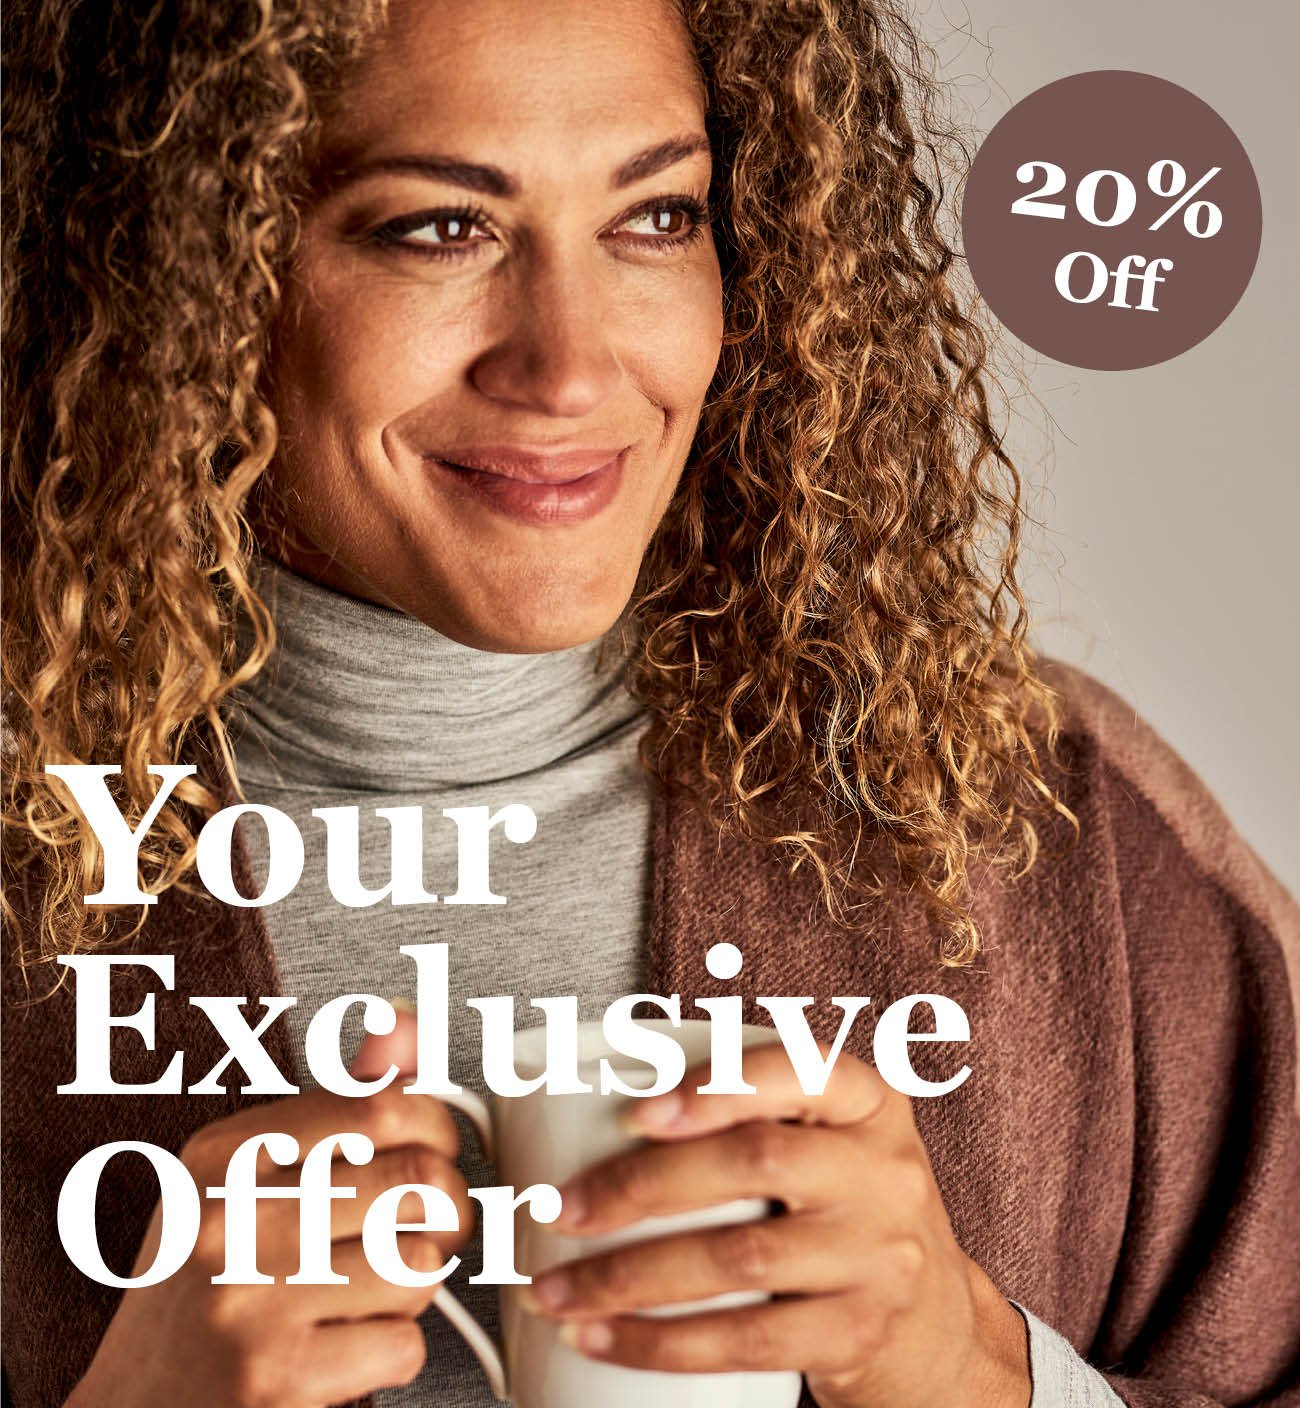 Your Exclusive Offer 20% Off Everything